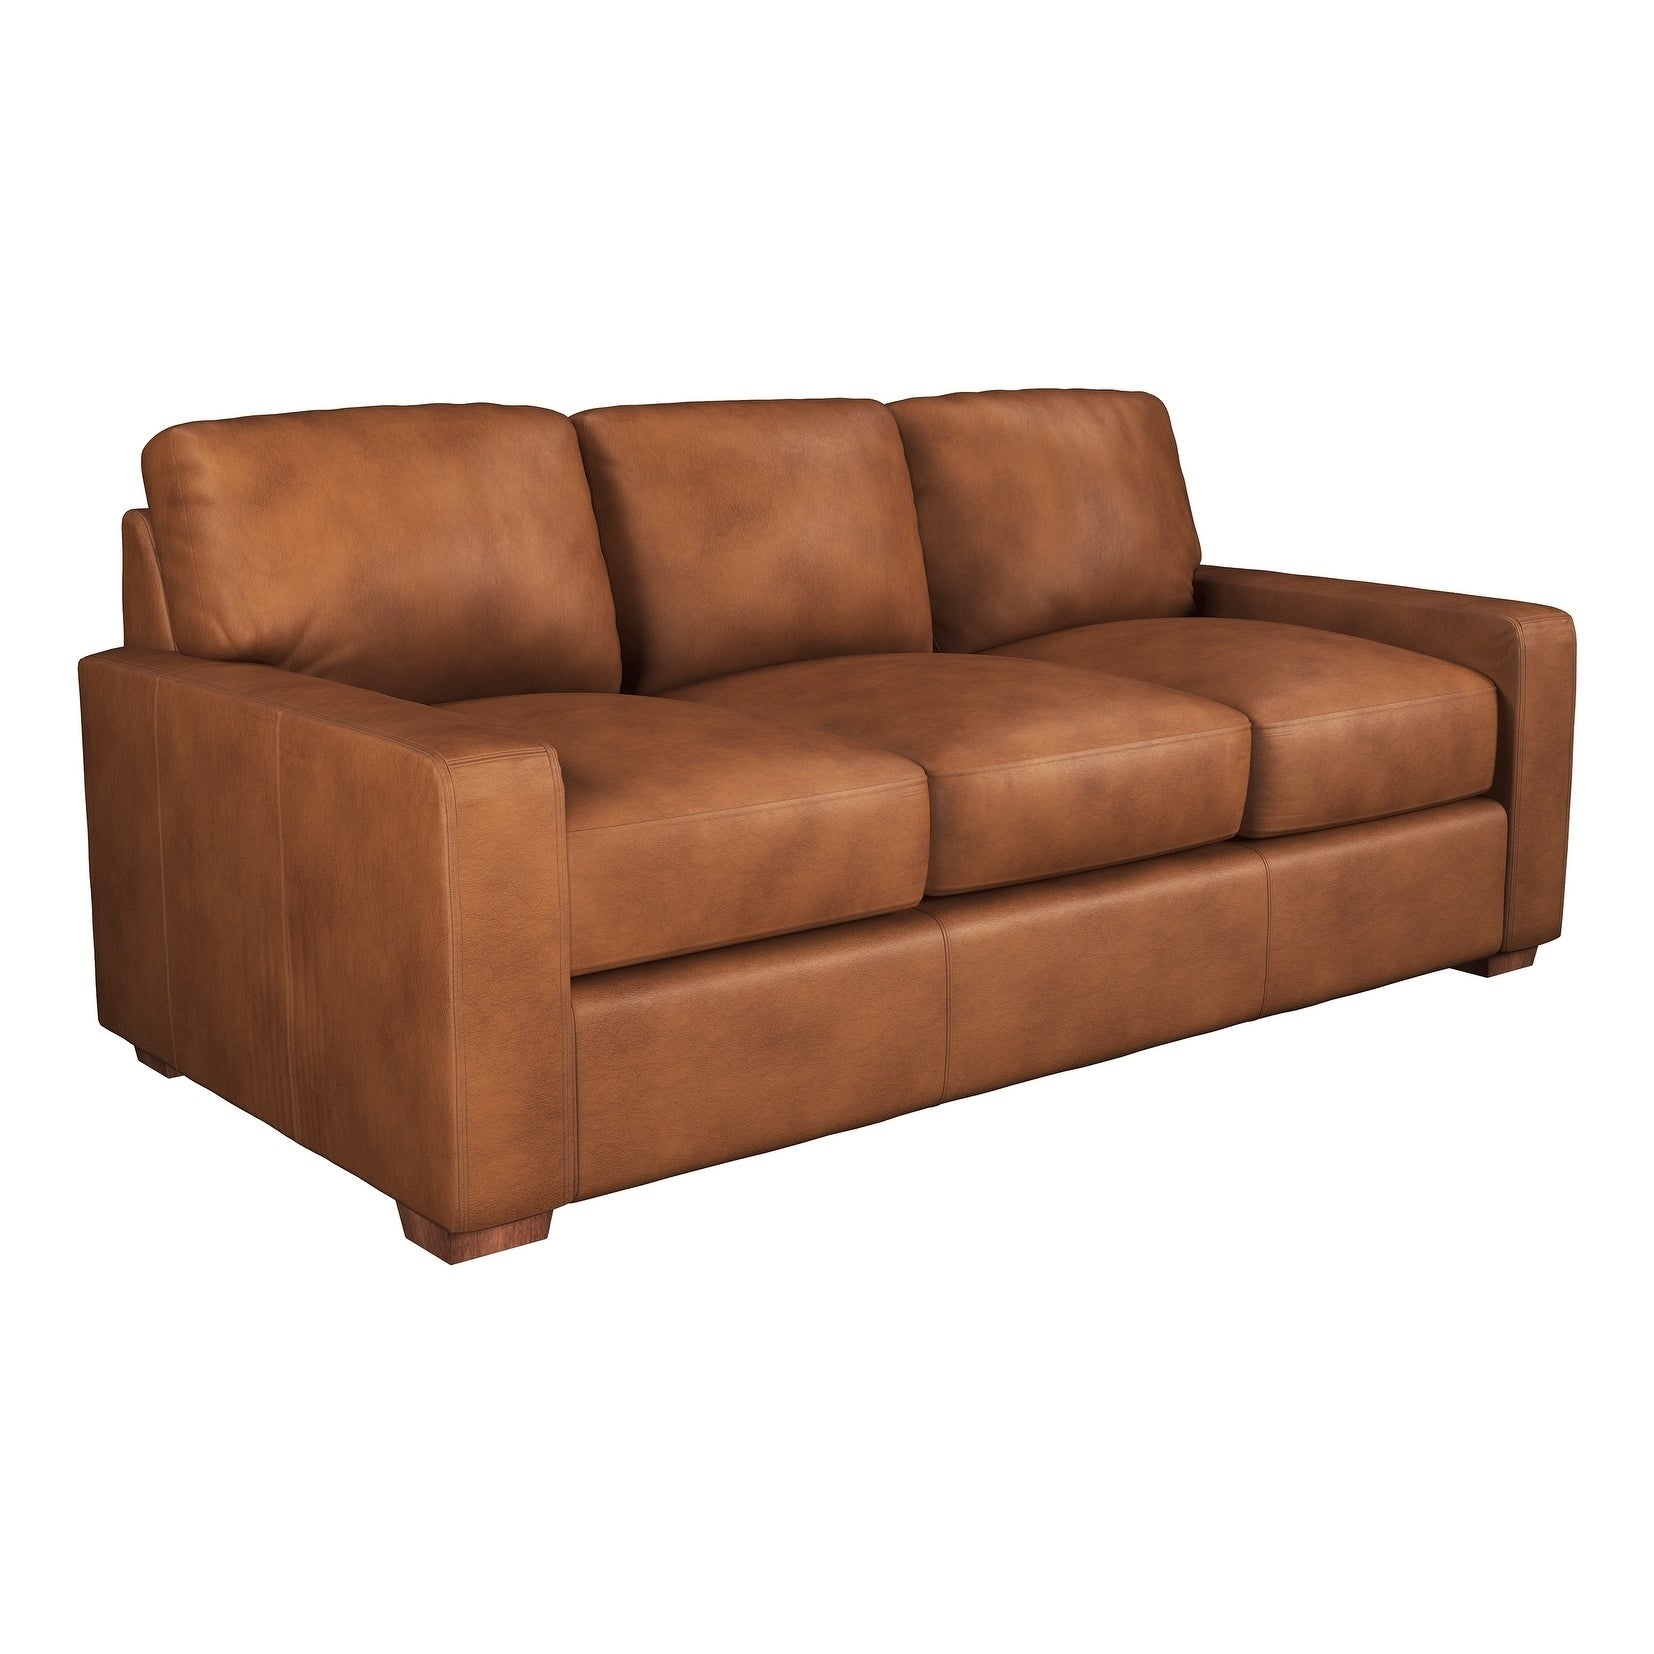 - Shop Made To Order Maxim 100% Top Grain Leather Queen Sleeper Sofa